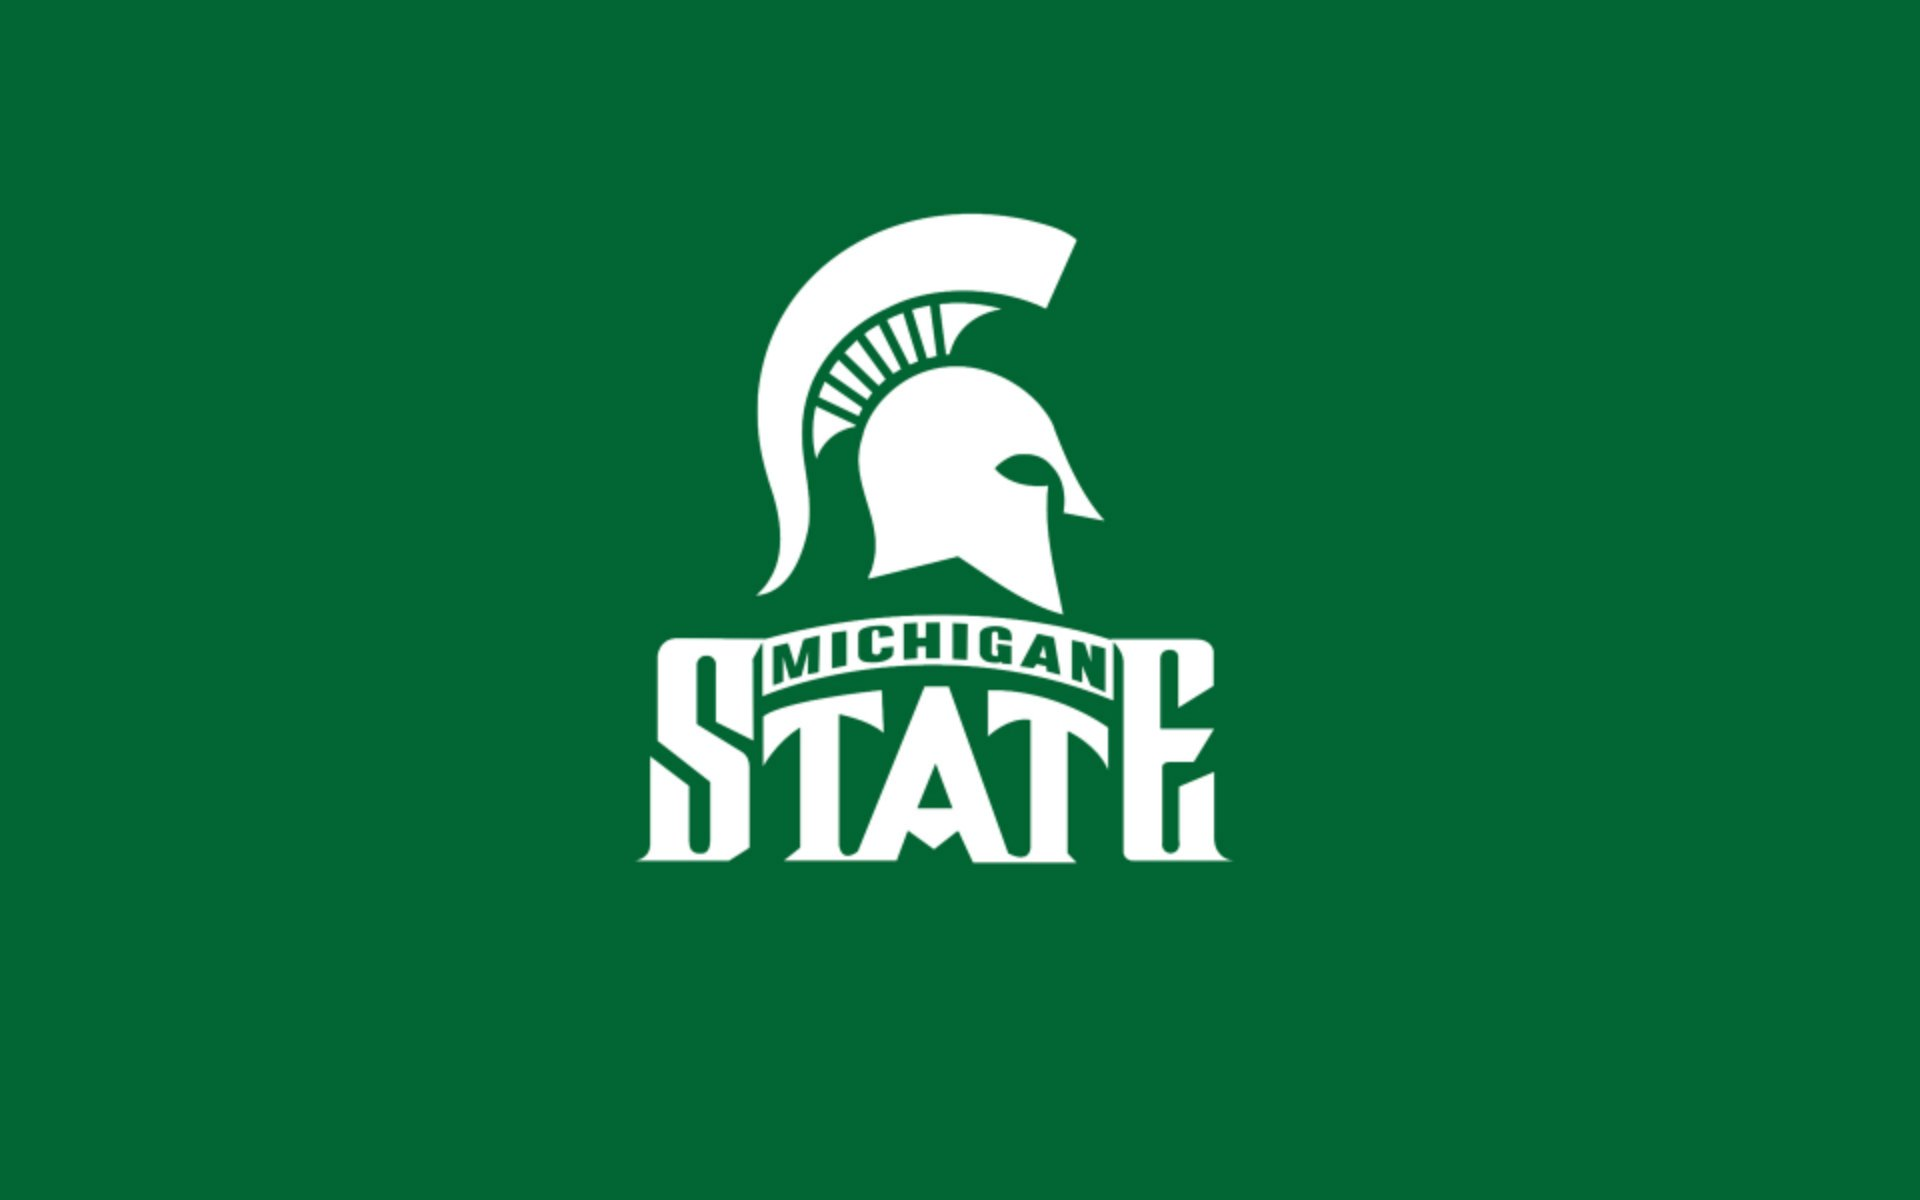 Michigan State University Wallpapers: Pin Wallpapers Spartans High Quality Hd Games 1920x1080